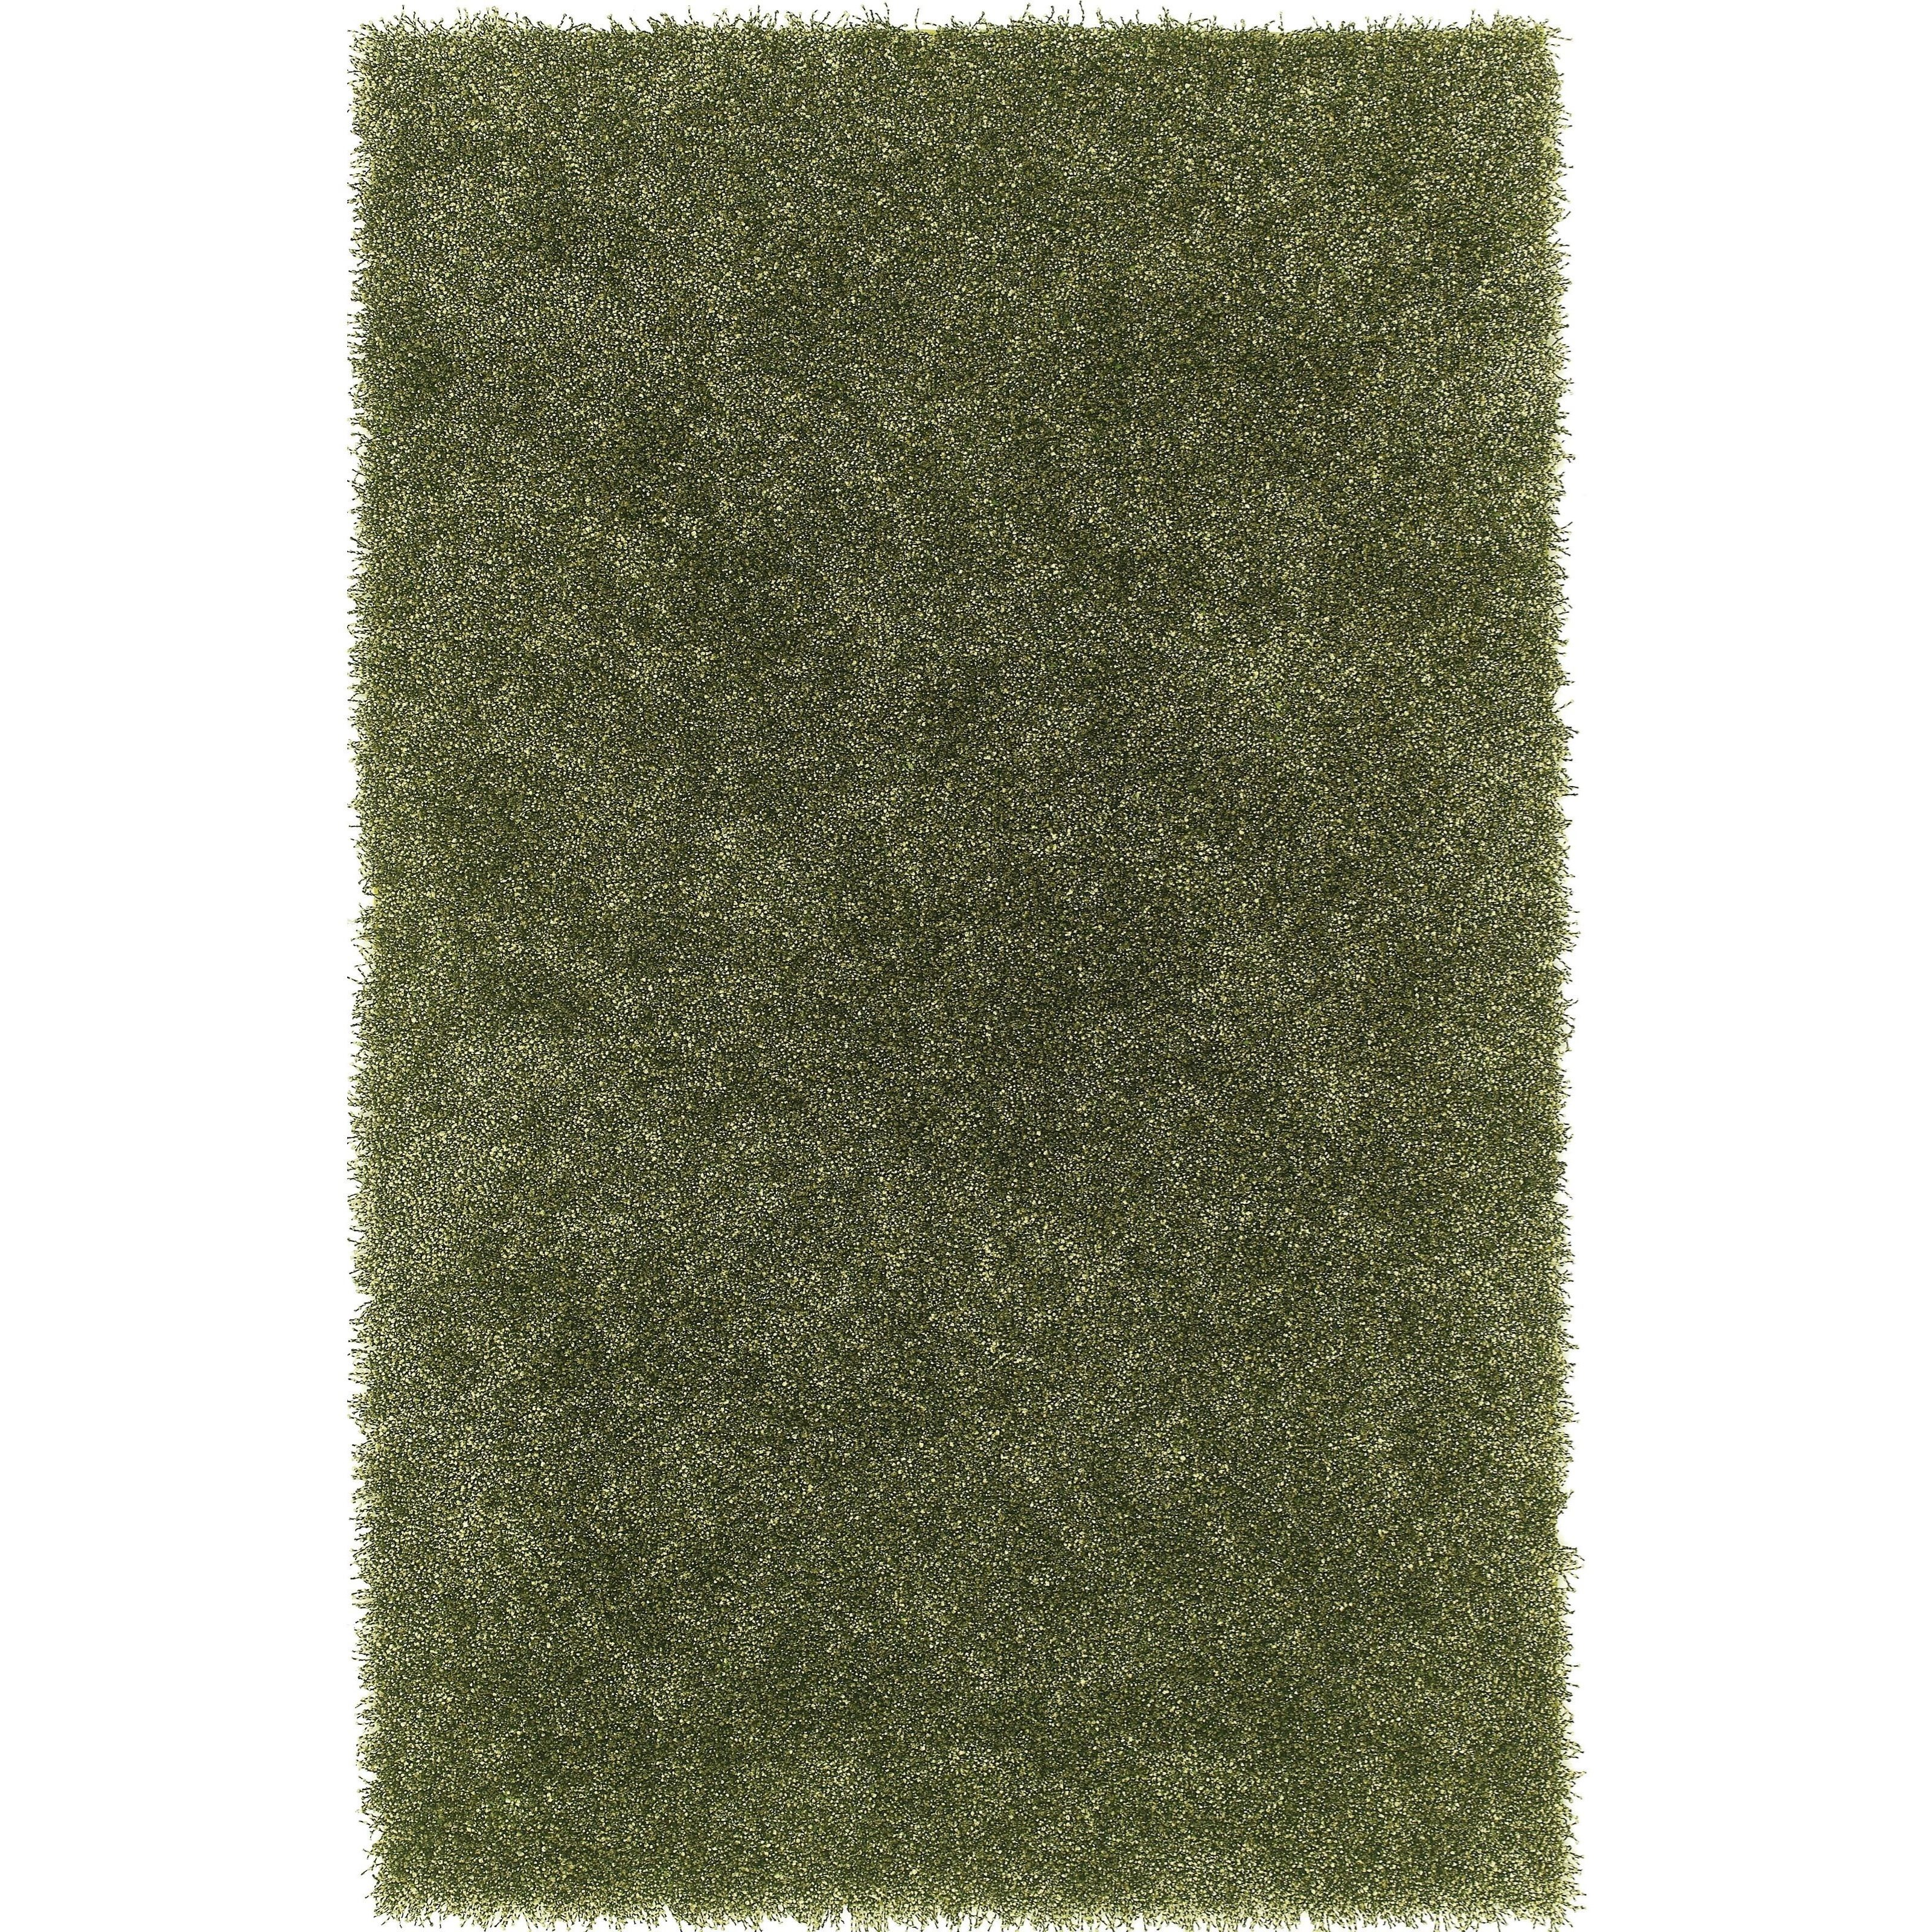 Dalyn Belize Kiwi 8'X10' Rug - Item Number: BZ100KI8X10